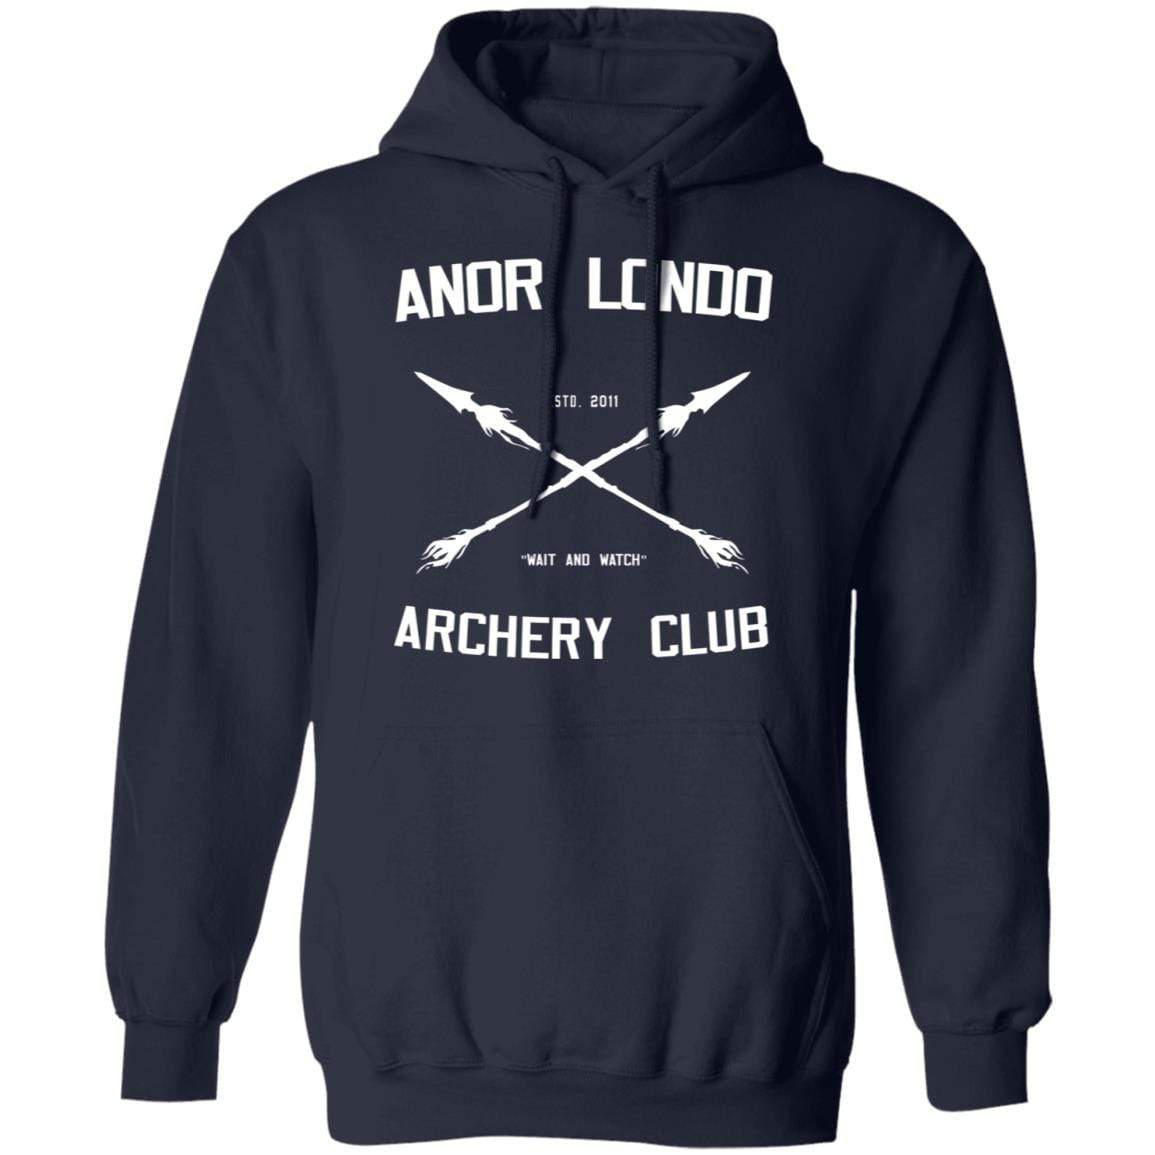 Anor Londo Archery Club 2011 T-Shirts, Hoodies 541-4742-88767424-23135 - Tee Ript